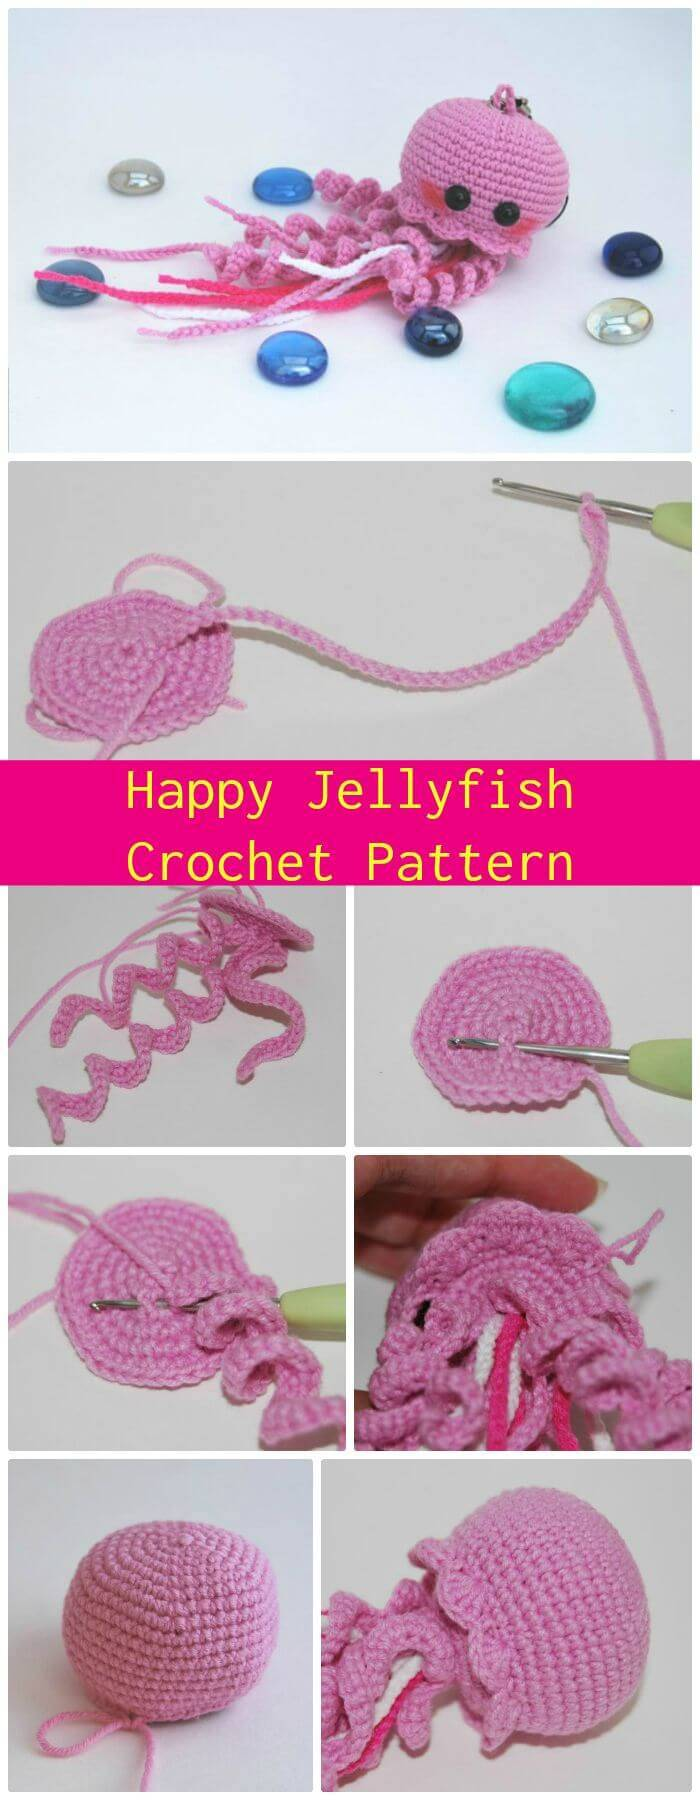 DIY Happy Jellyfish Amigurumi Crochet Pattern, free and easy crochet jellyfish patterns